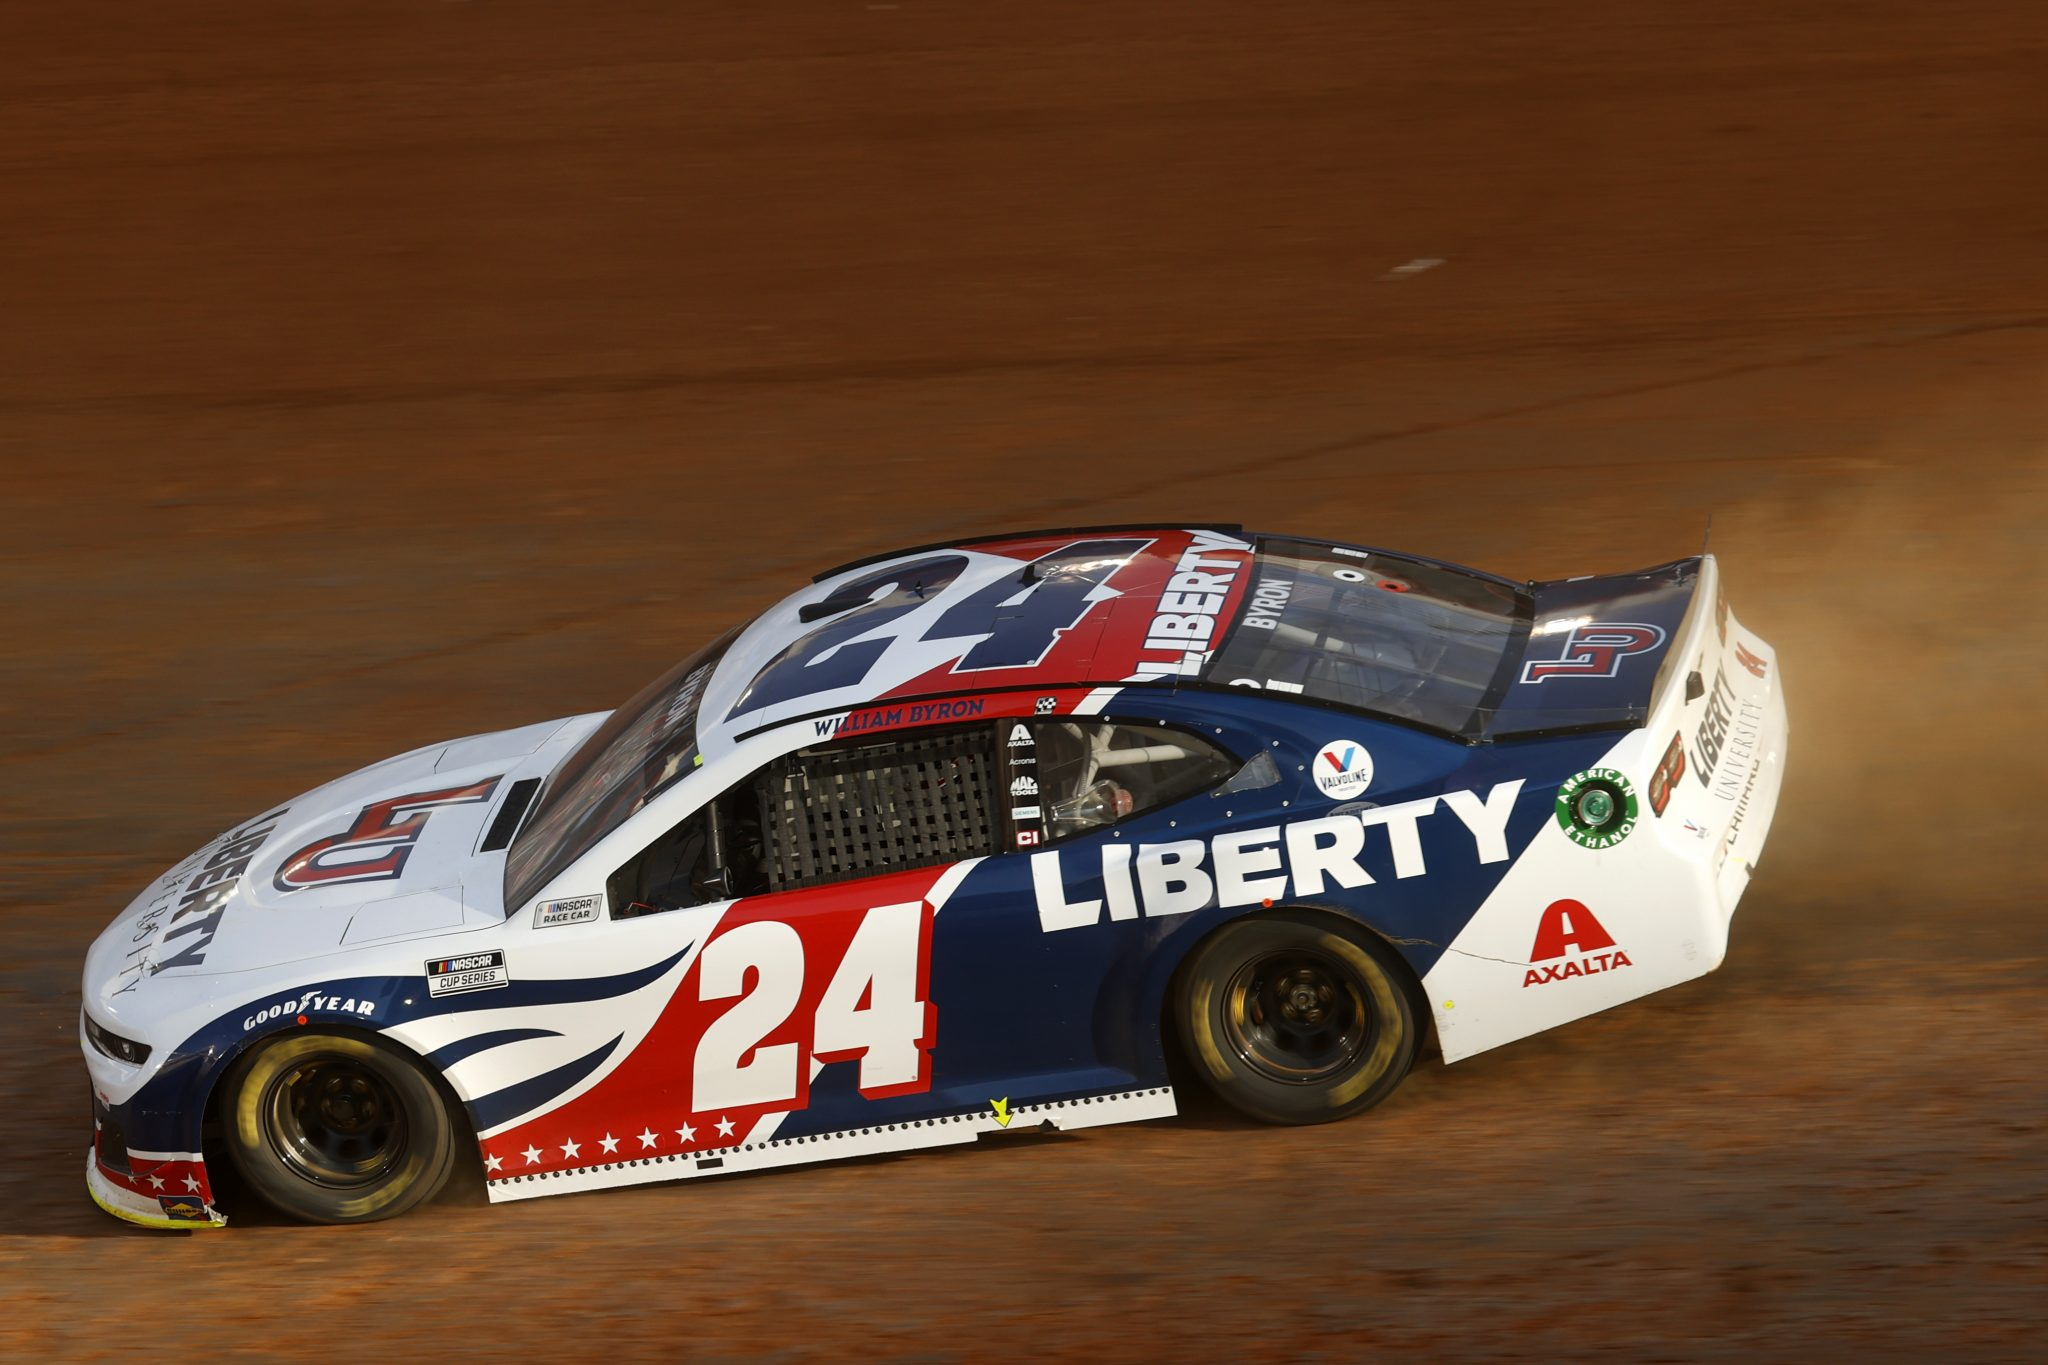 BRISTOL, TENNESSEE - MARCH 26: William Byron, driver of the #24 Liberty University Chevrolet, drives during practice for the NASCAR Cup Series Food City Dirt Race at Bristol Motor Speedway on March 26, 2021 in Bristol, Tennessee. (Photo by Chris Graythen/Getty Images) | Getty Images